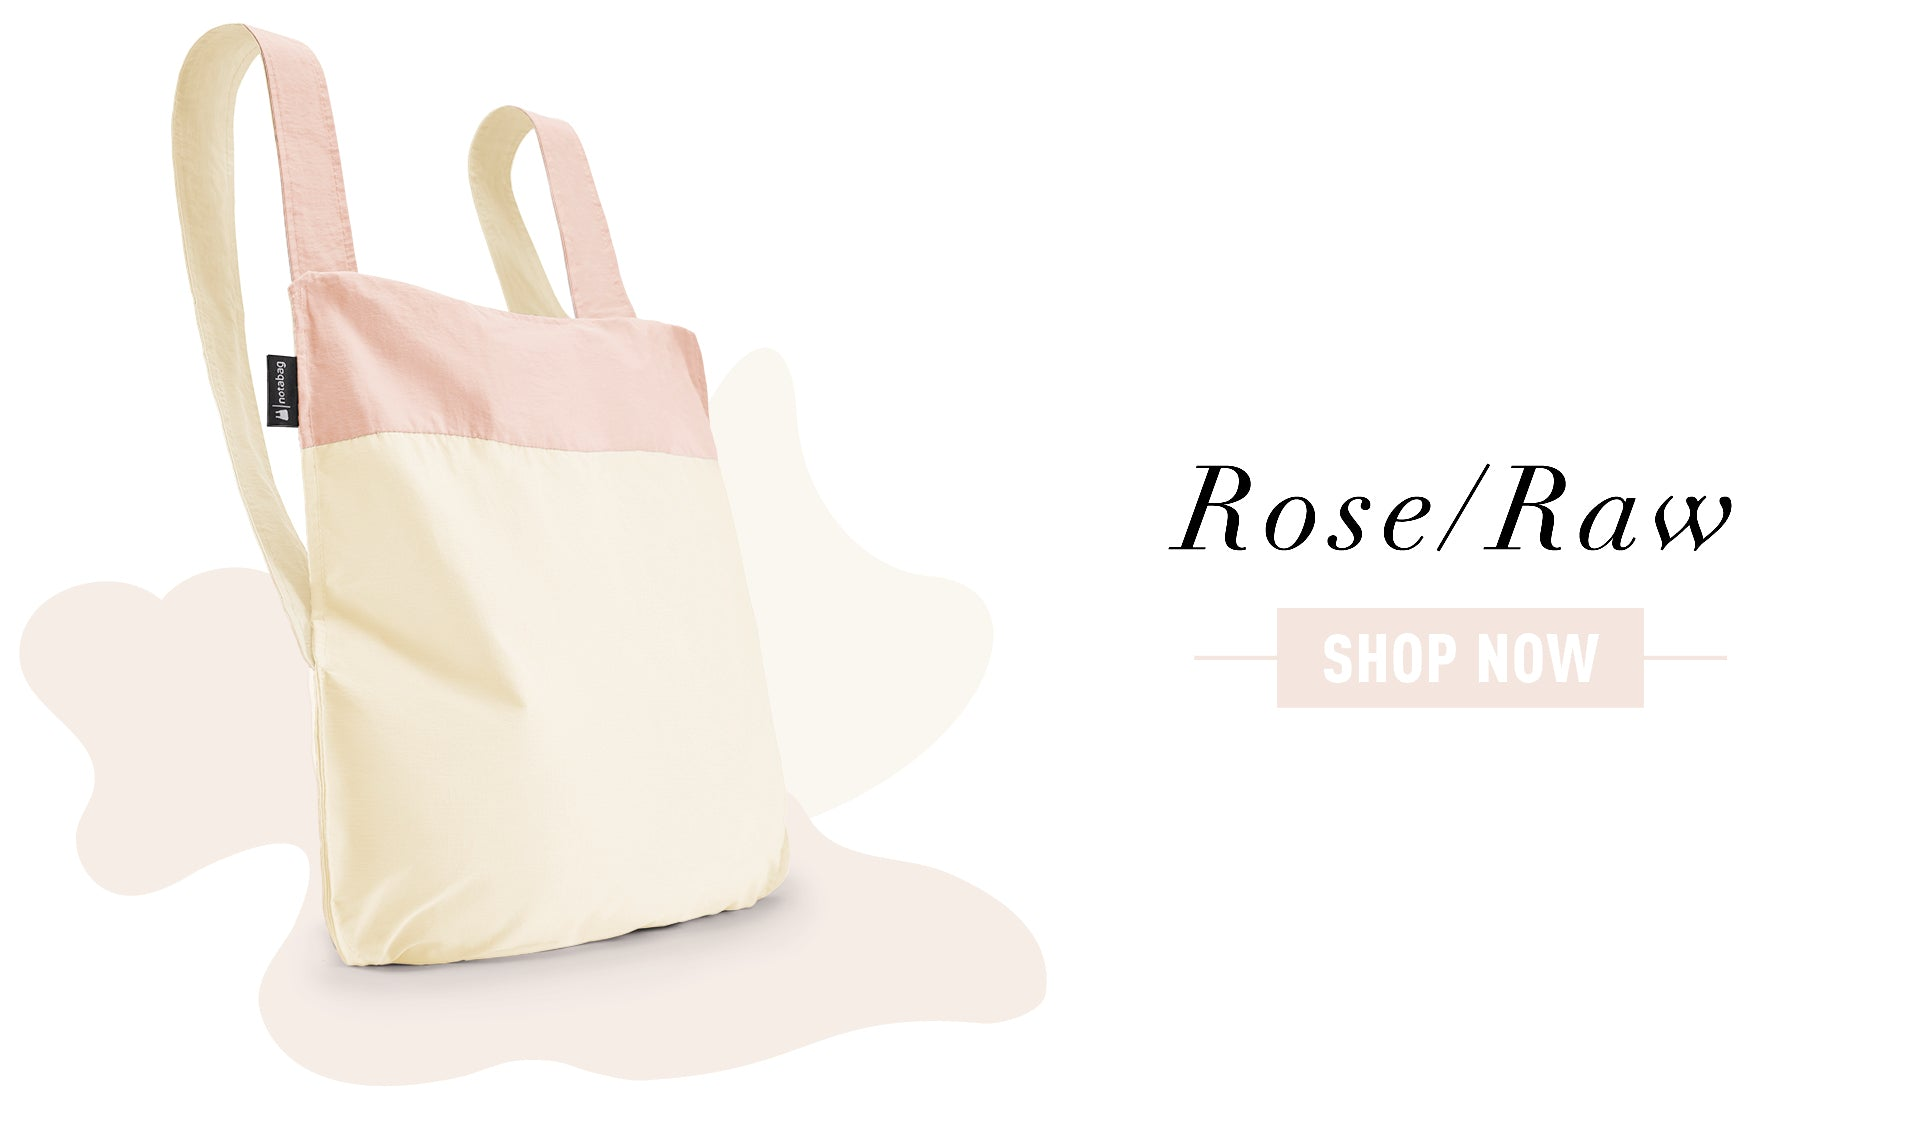 Notabag Rose/Raw - Shop Now